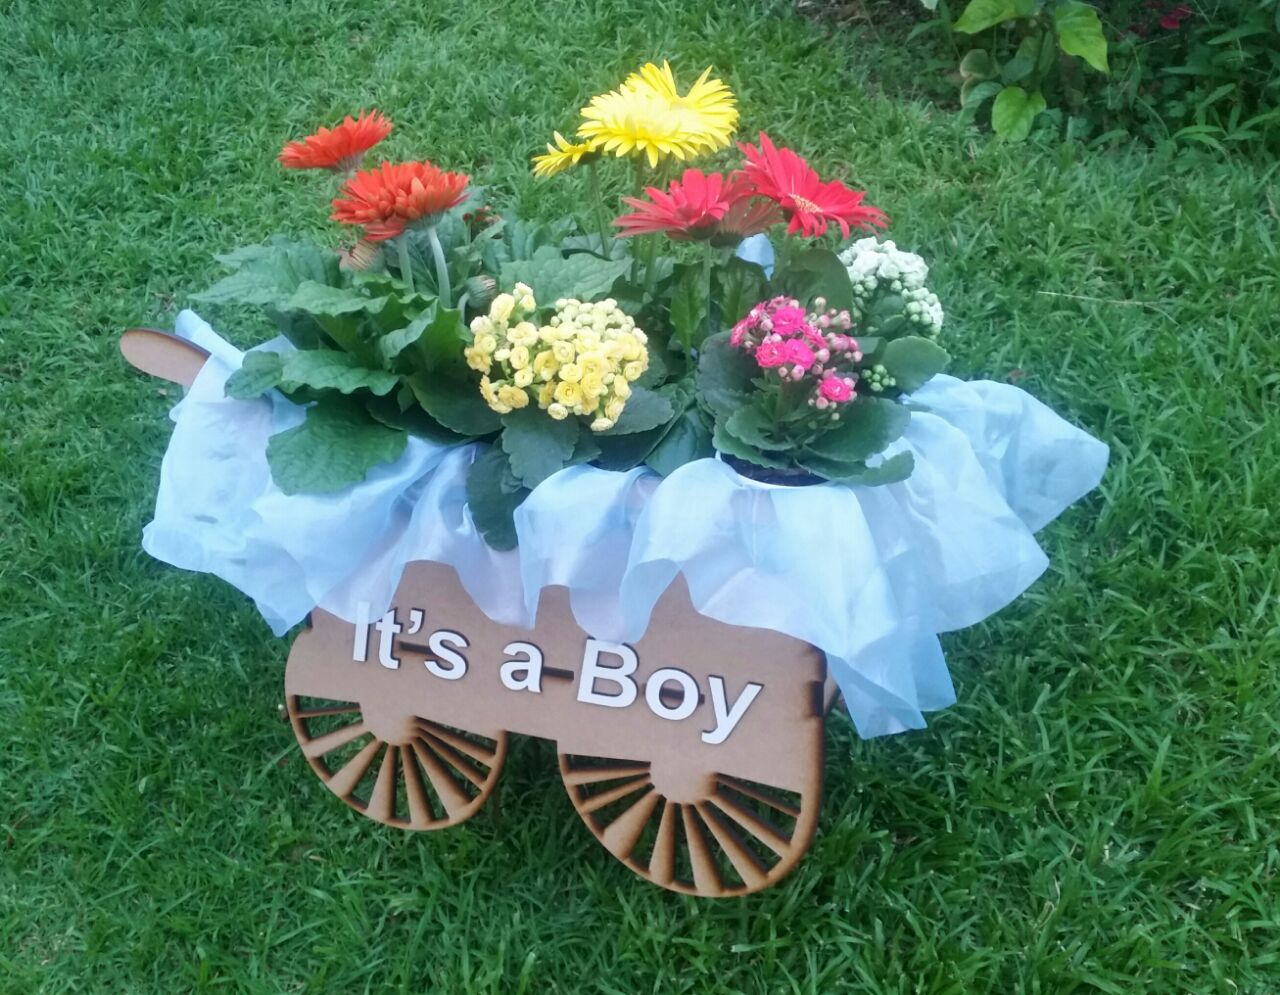 IT IS A BOY 3.jpg